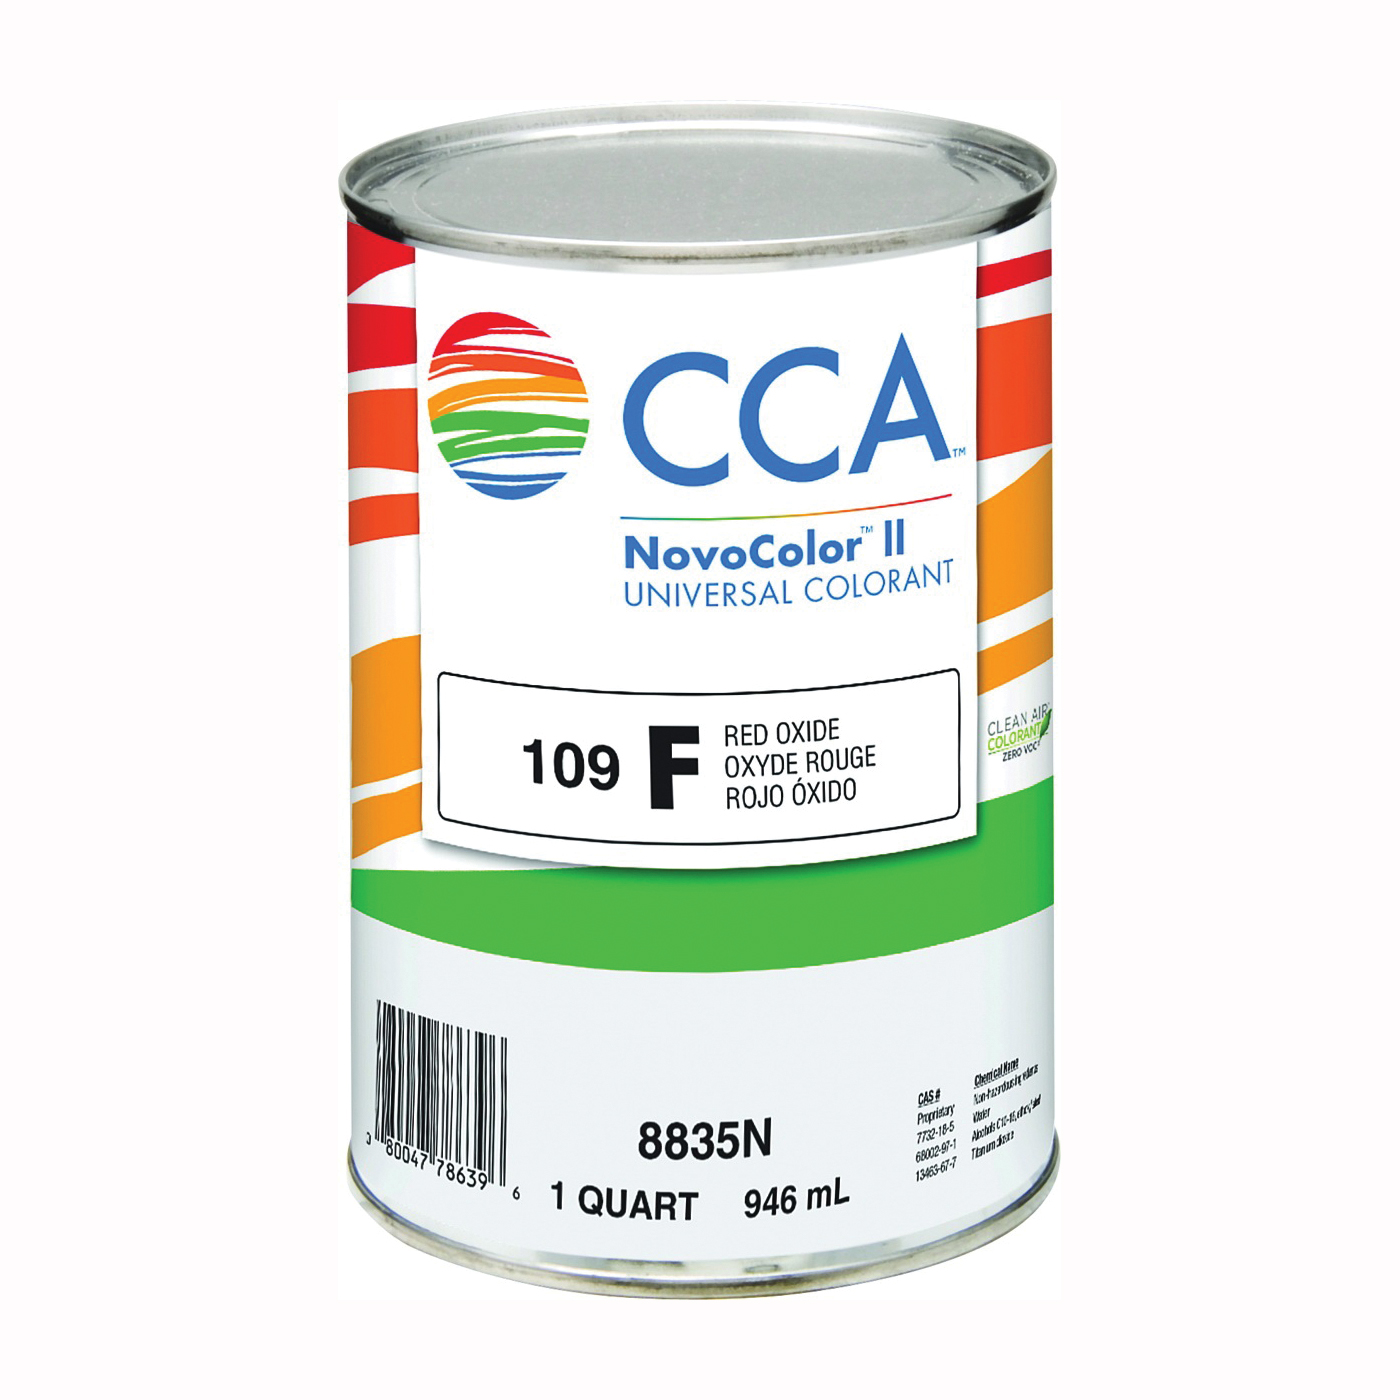 Picture of CCA NovoColor II 8835N Universal Colorant, Red Oxide, Liquid, 1 qt Package